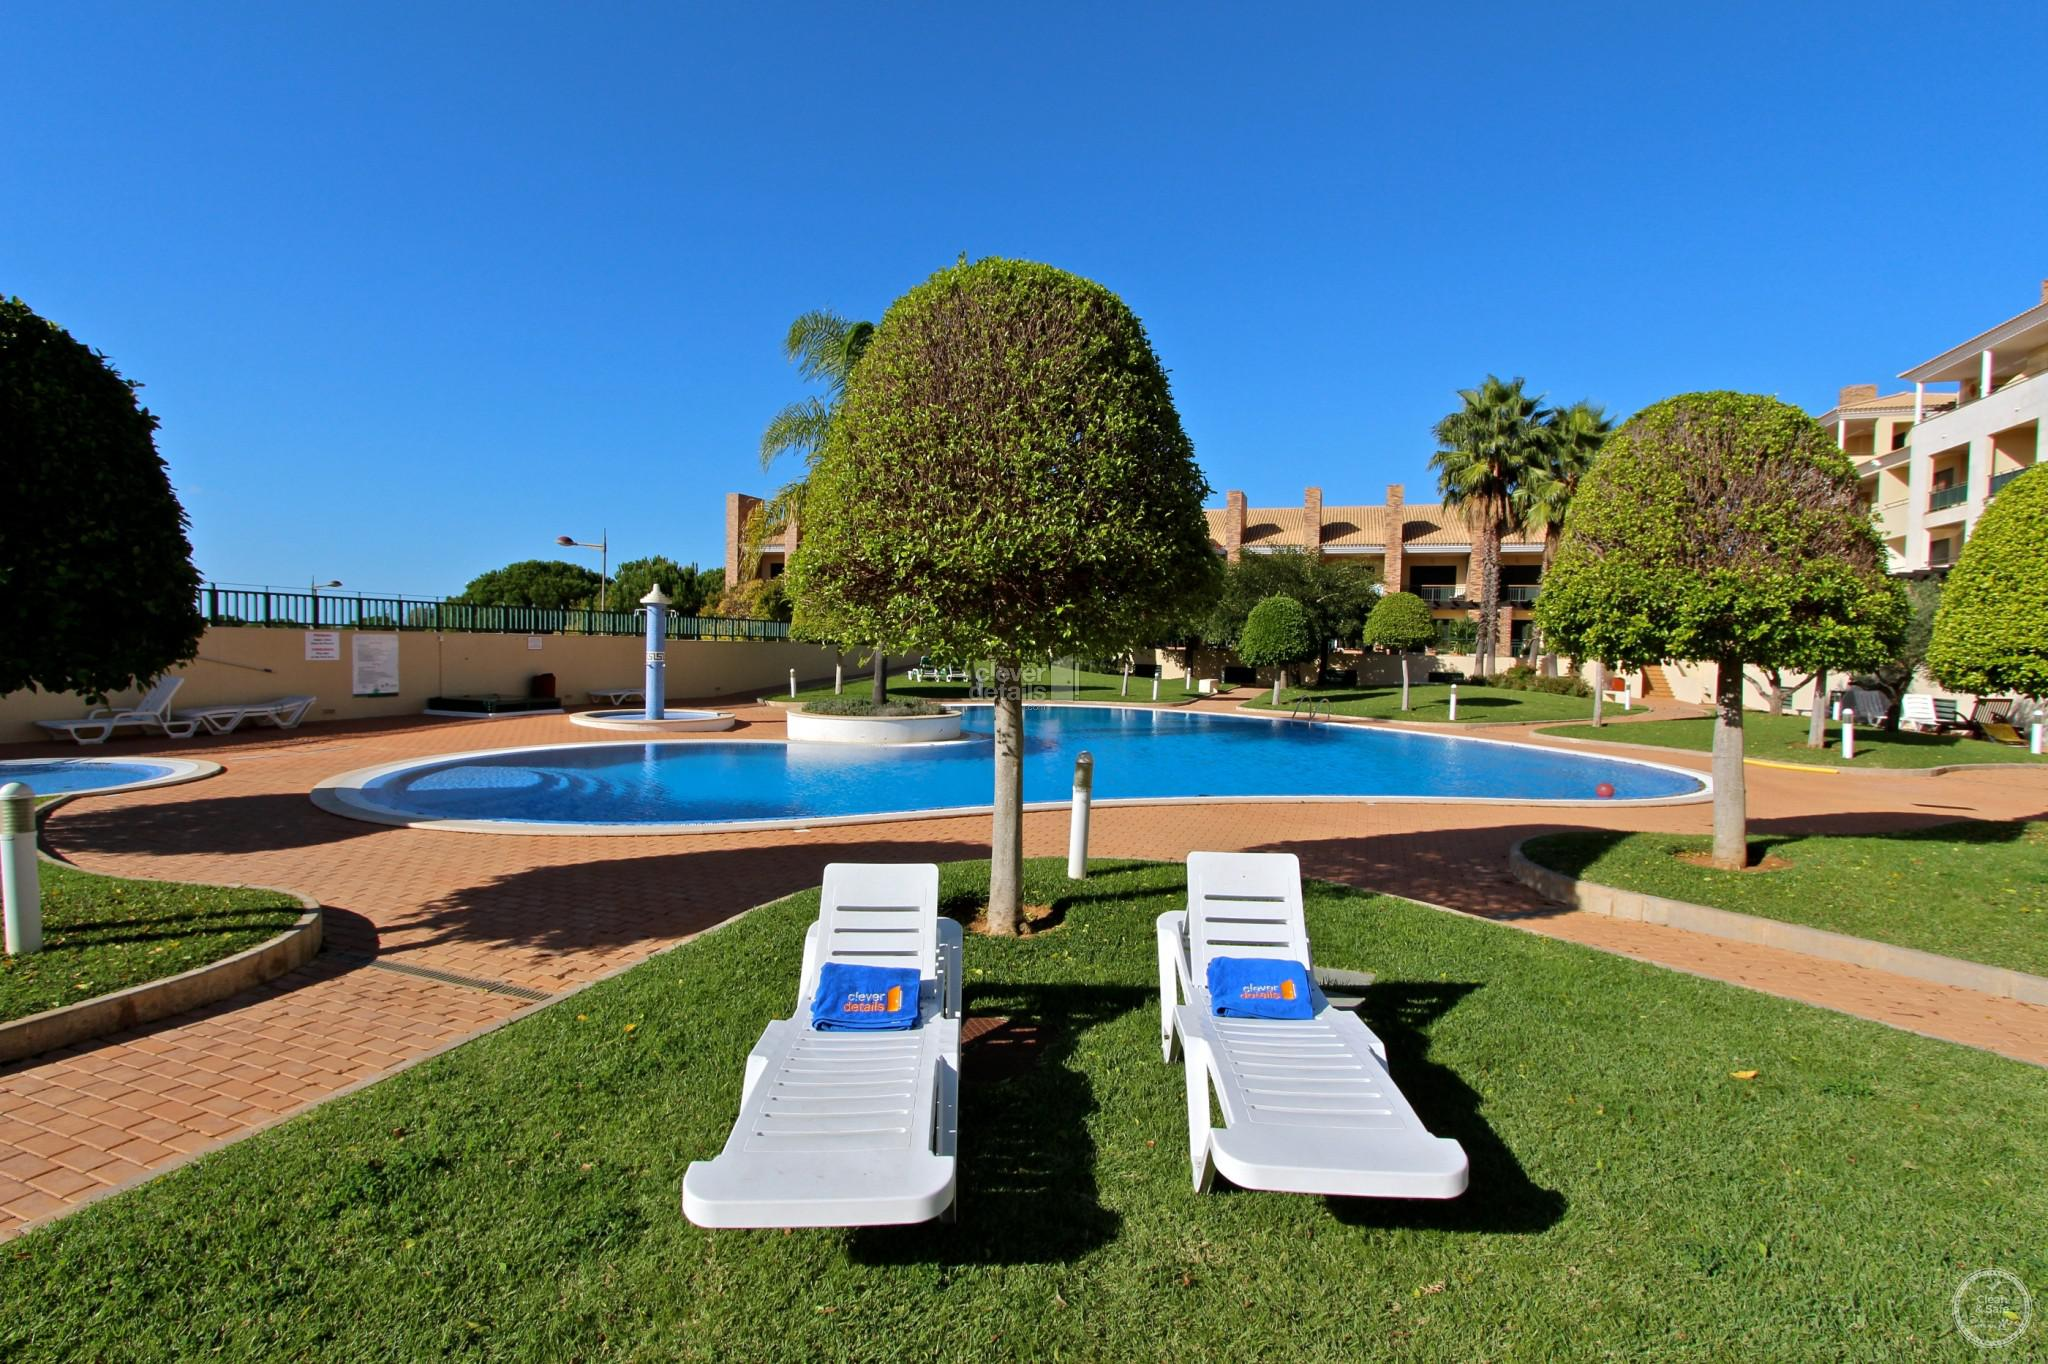 Holiday Villas Vilamoura: This 3 bedroomed stylish townhouse is in a quiet residential area but only 5 minutes drive from the marina and some of the Algarve's most glorious beaches.